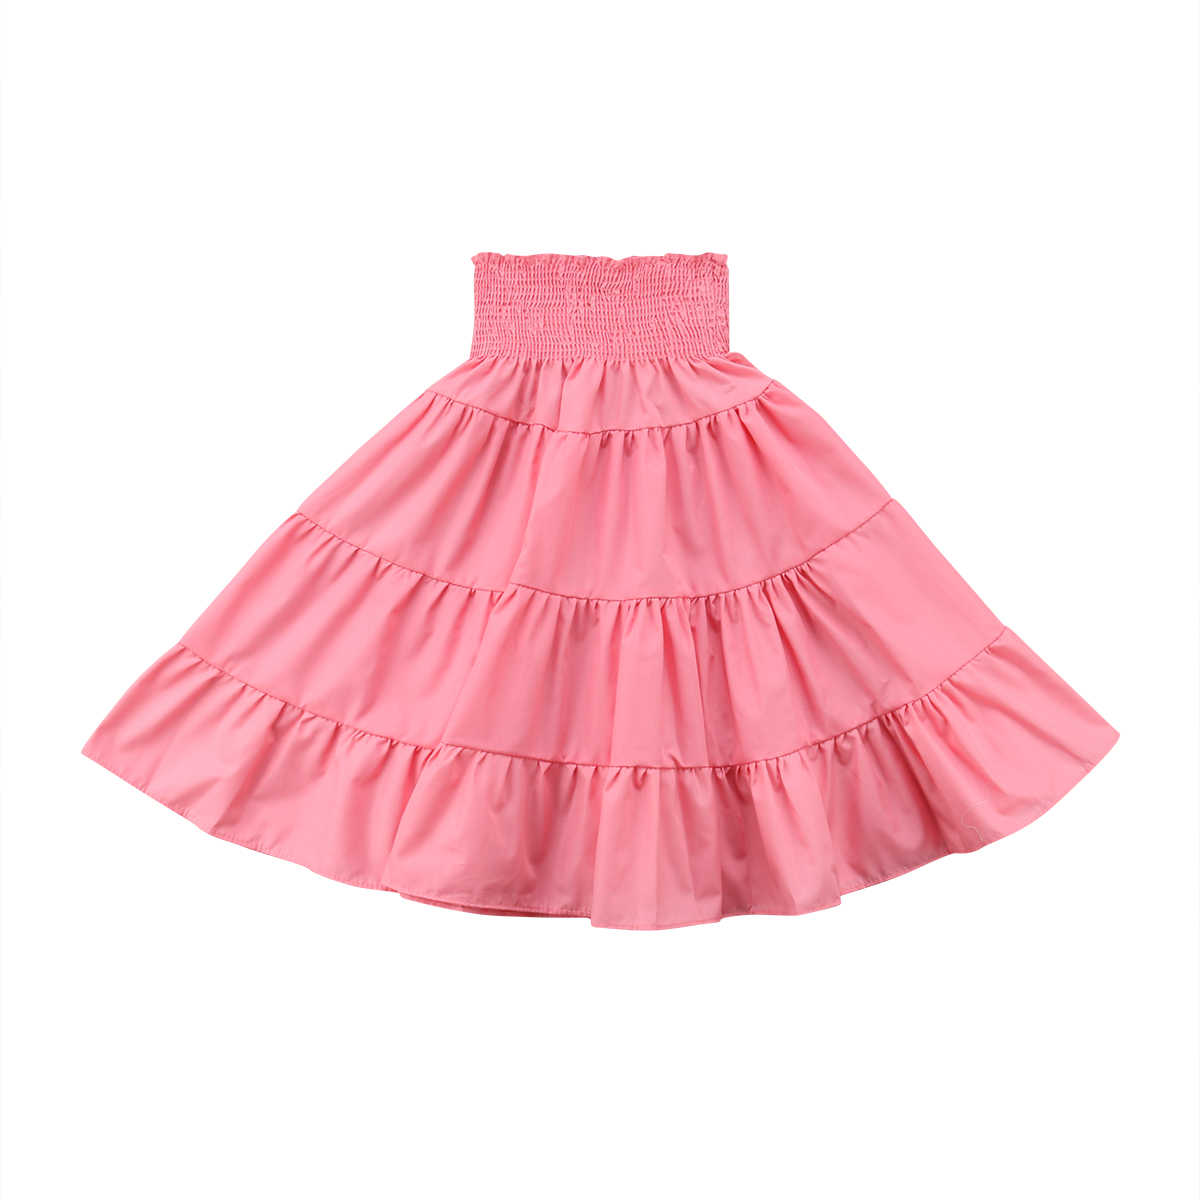 0b2584ede Baby Girls Beach Boho Skirt Casual Long Princess Summer Pleated Solid Color  Kids Casual Skirts